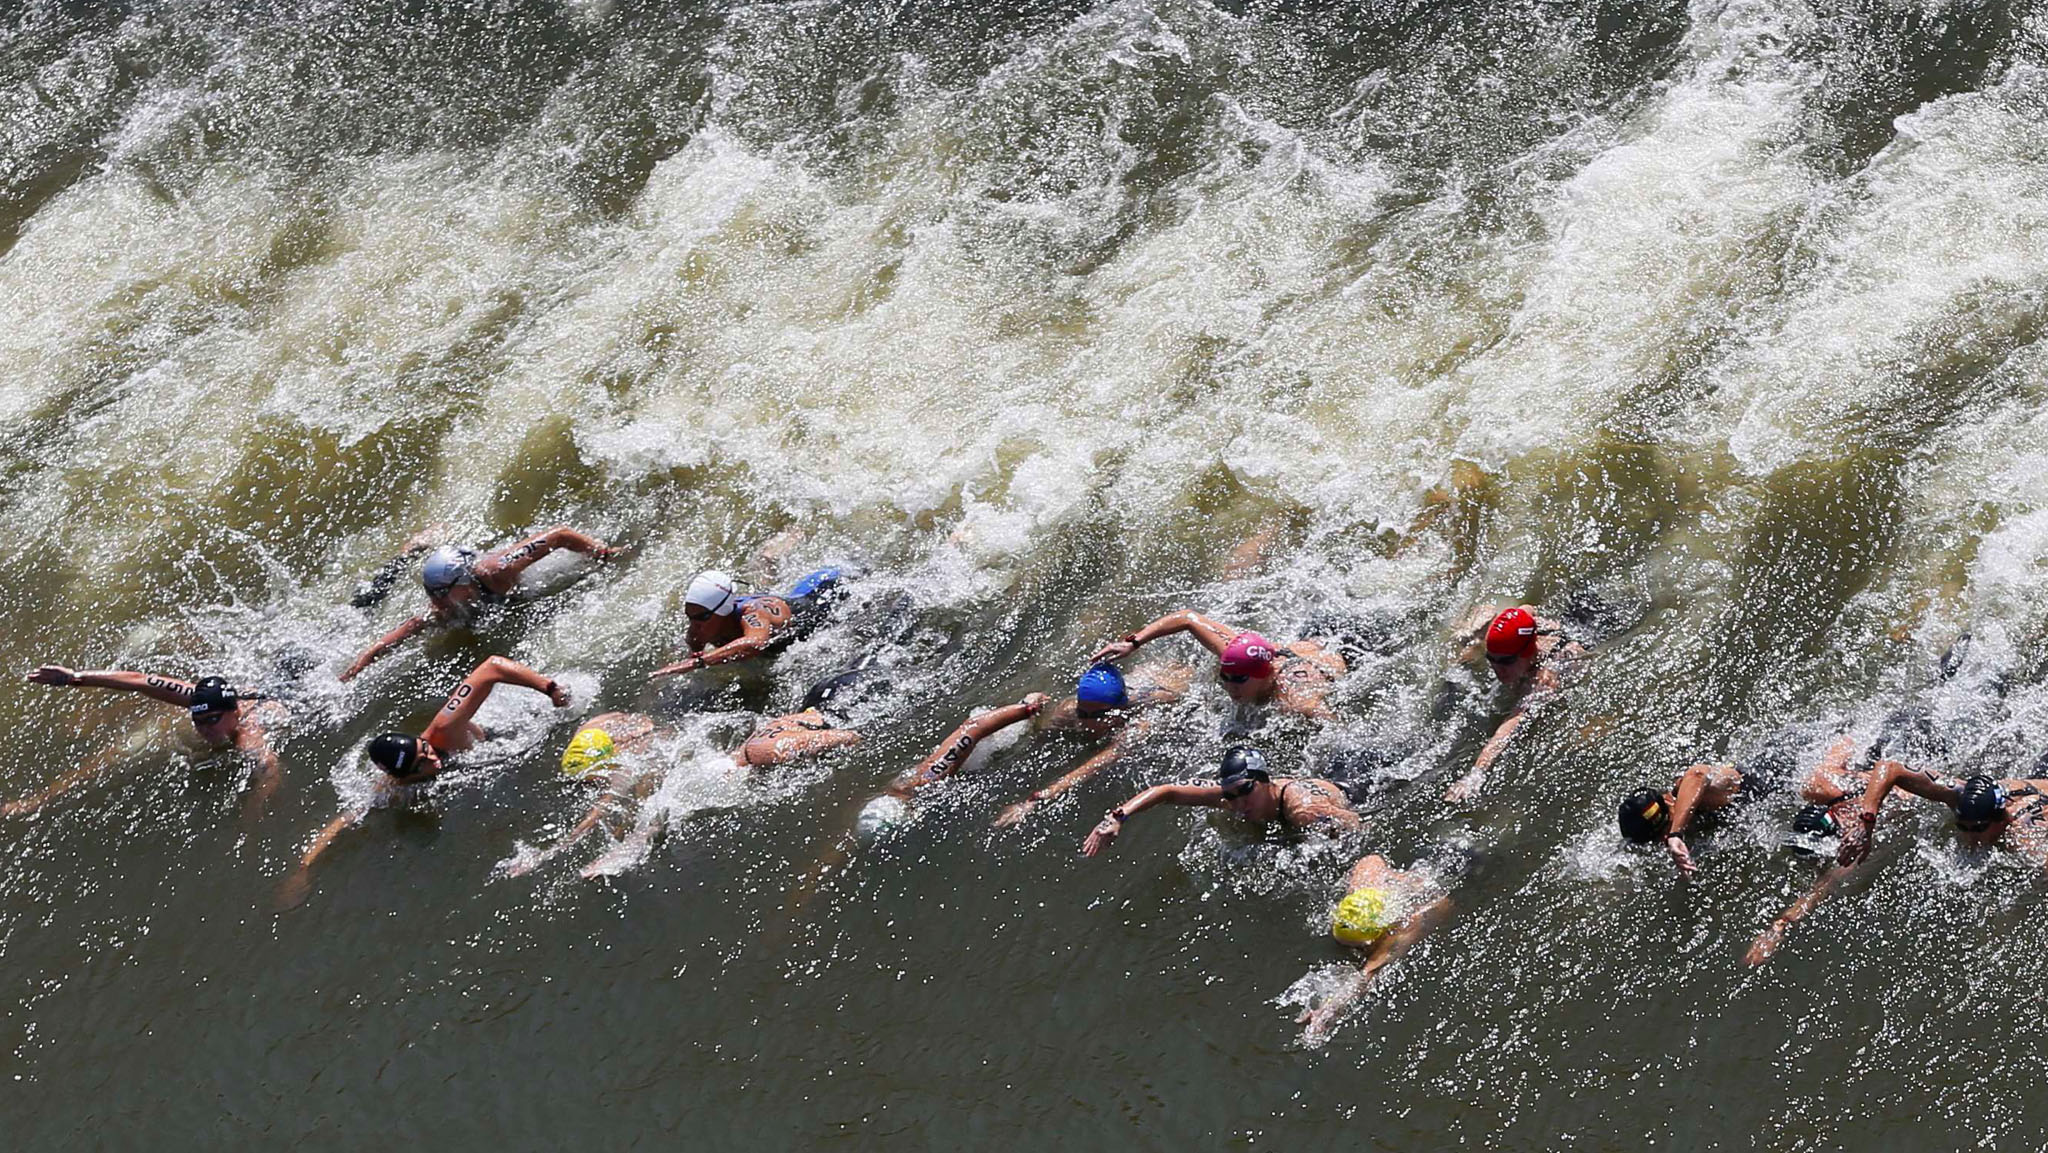 Swimmers start the women's 10km open water race at the Aquatics World Championships in Kazan, Russia.